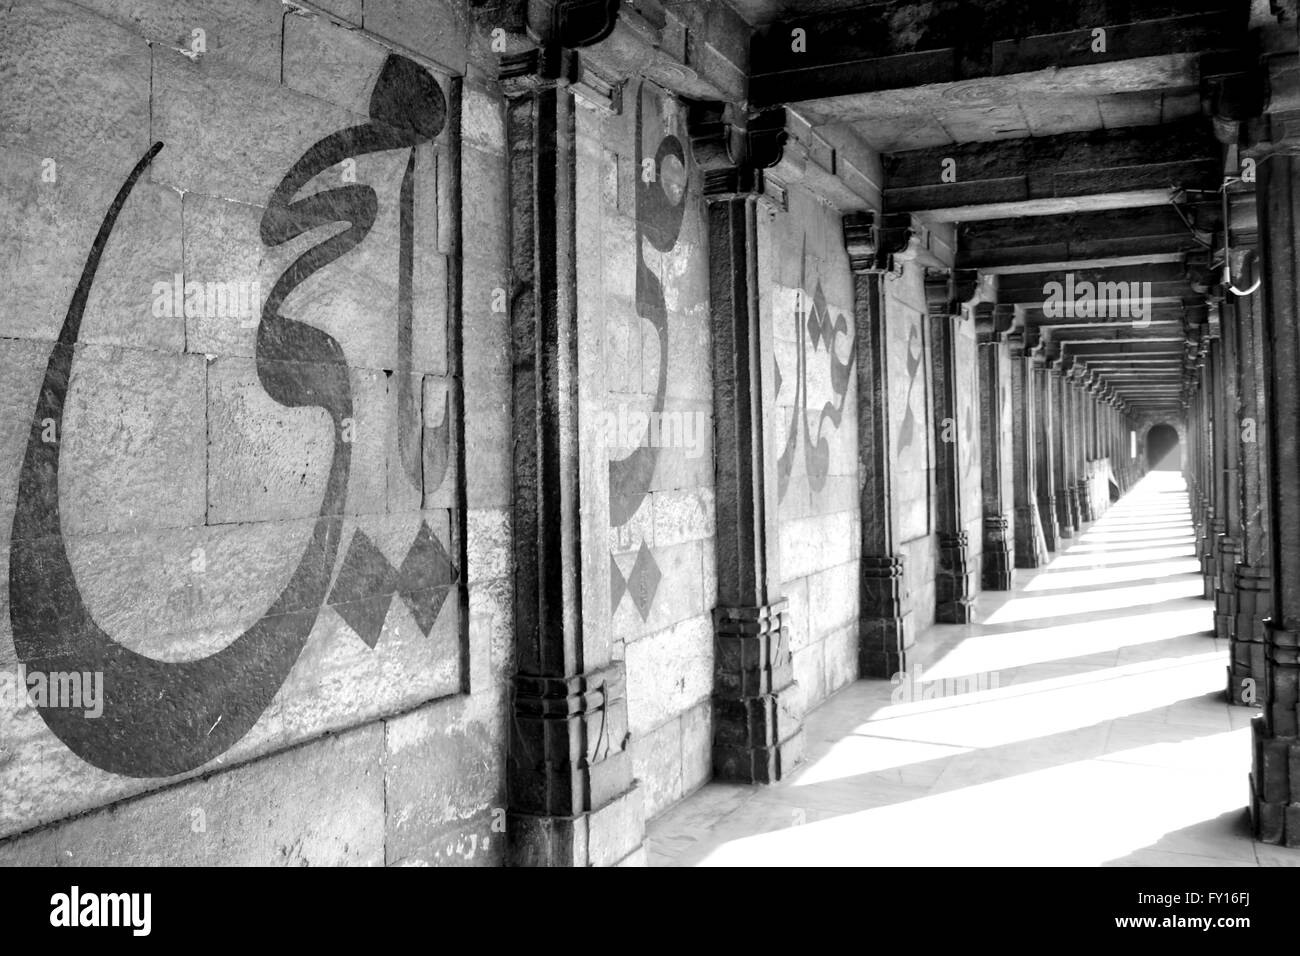 A monochrome image of a wall at the Jama Masjid in Ahmedbad, Gujarat. - Stock Image